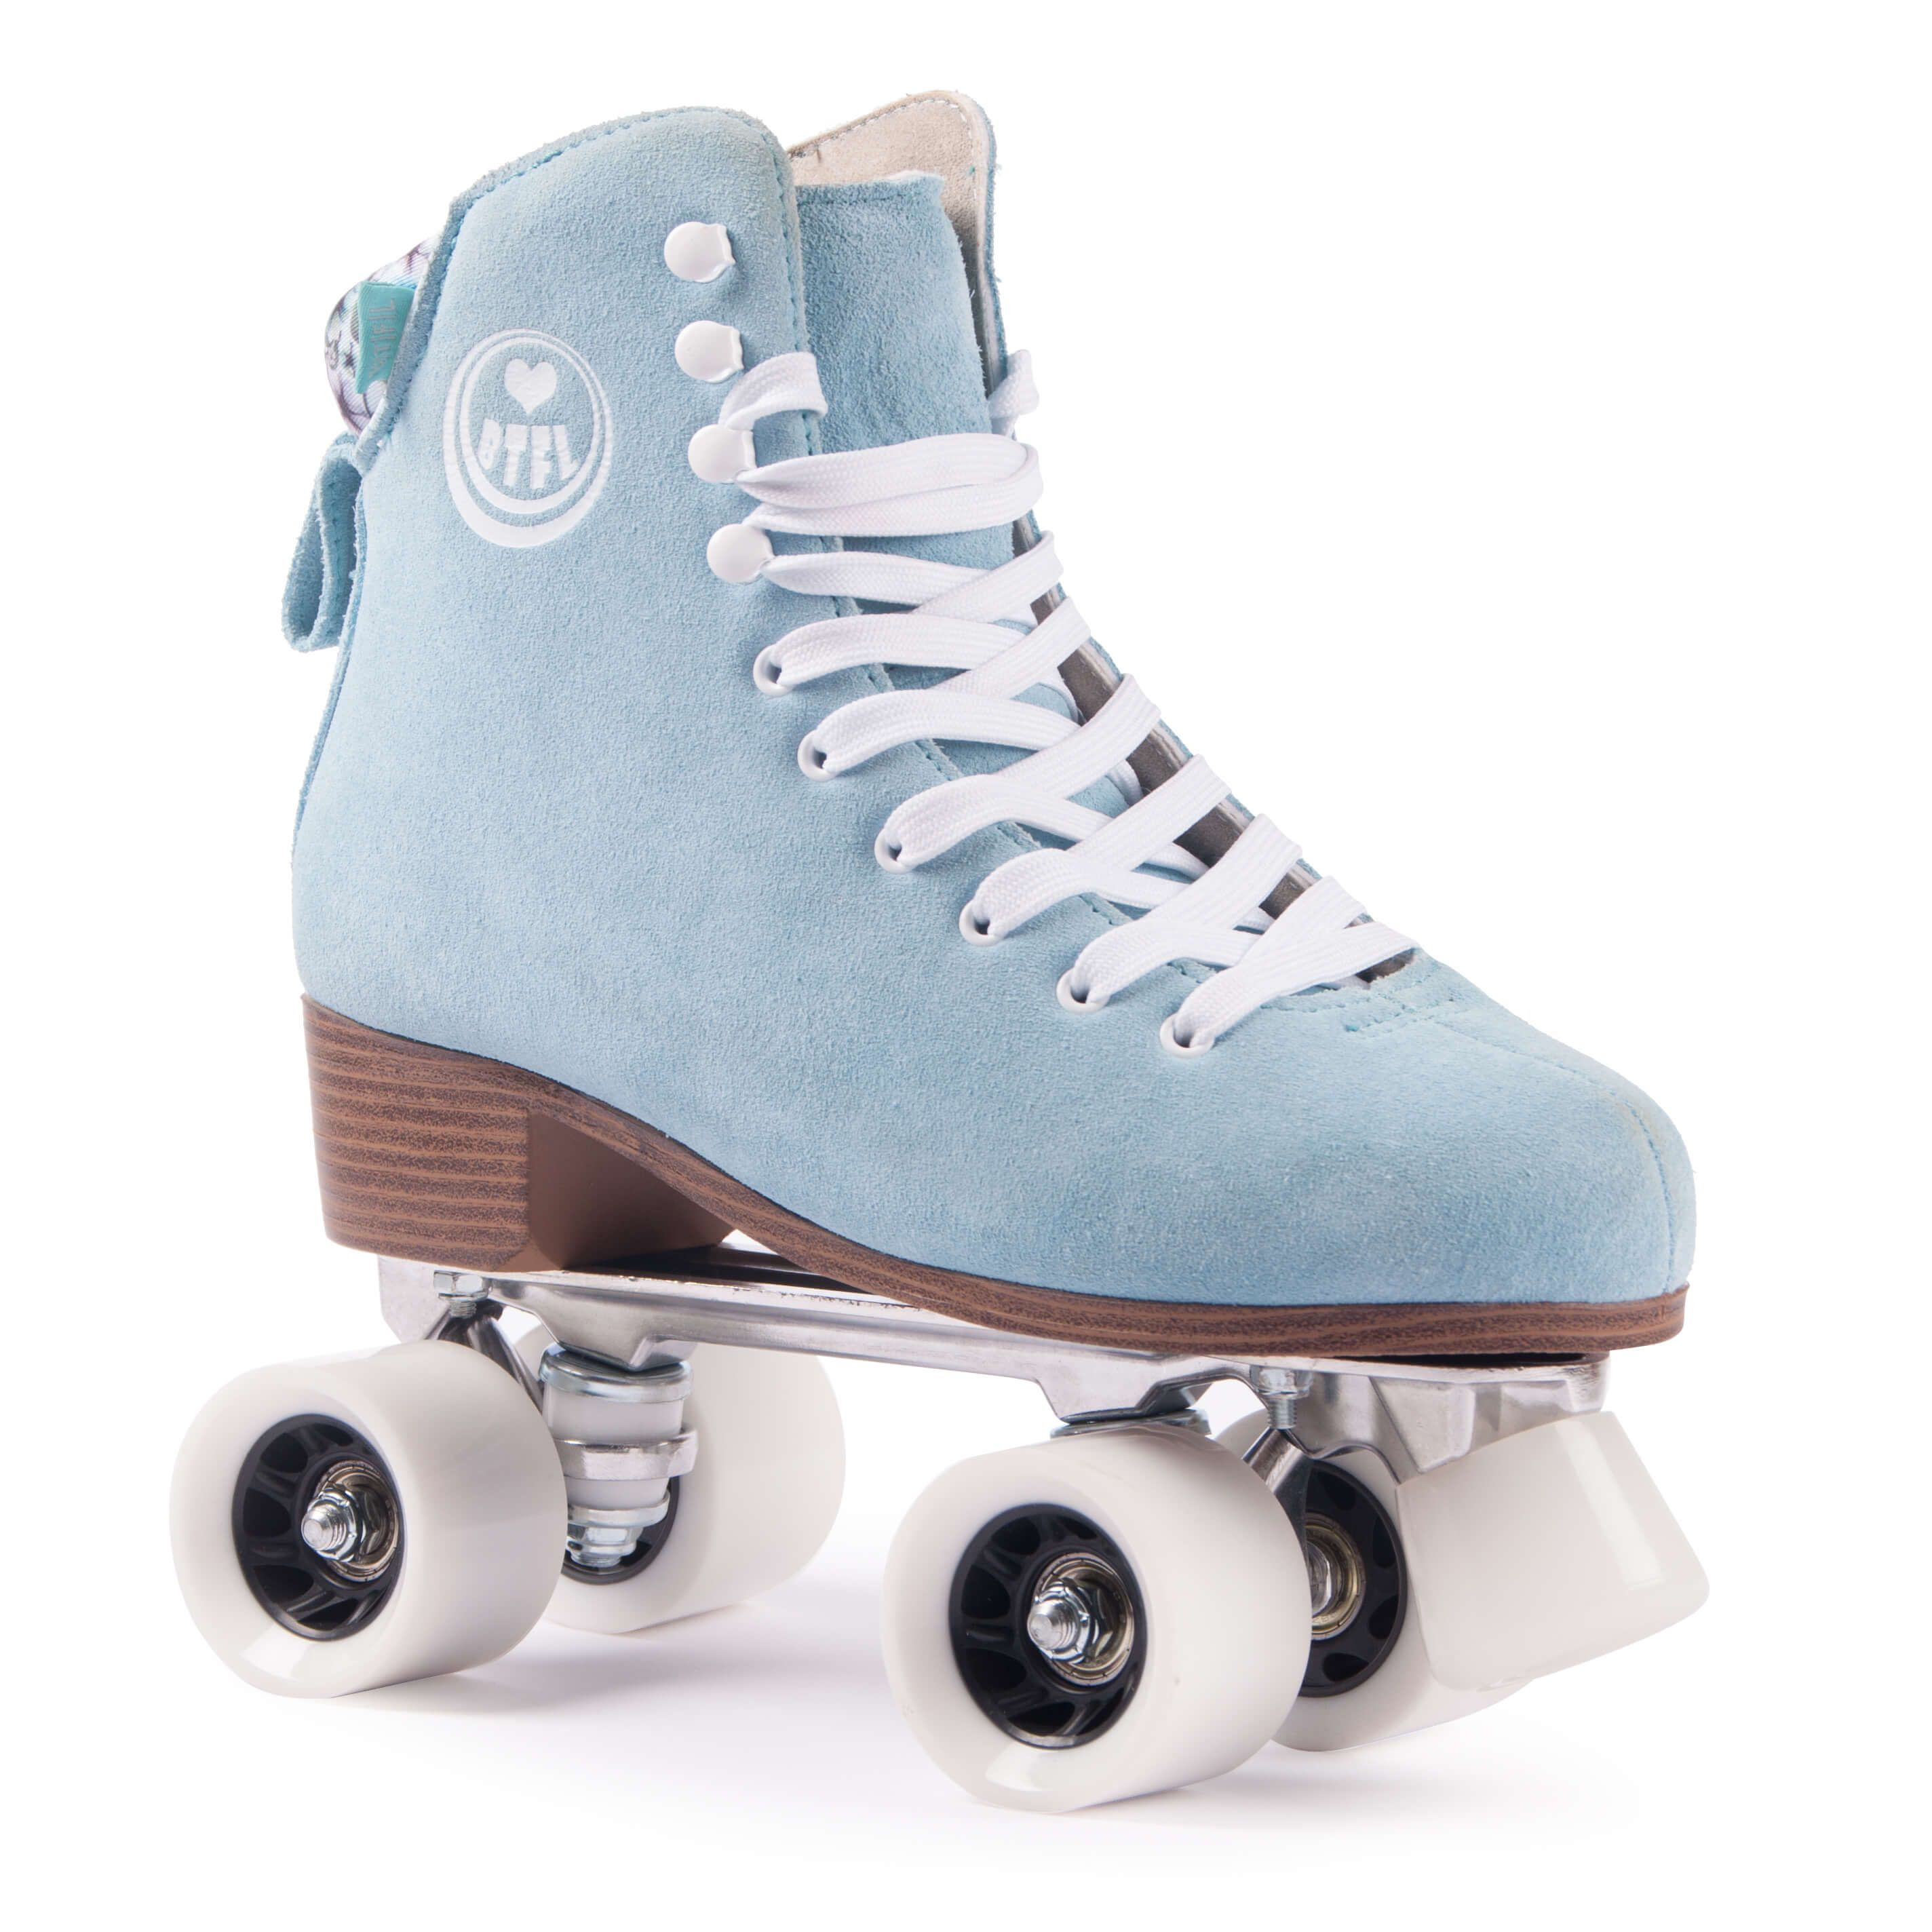 Bring back the feeling of the 70ies disco-boogie days when it all began  with these BTFL Roller Skate Classics! These skates have a timeless design  and ... d2f6156bf0